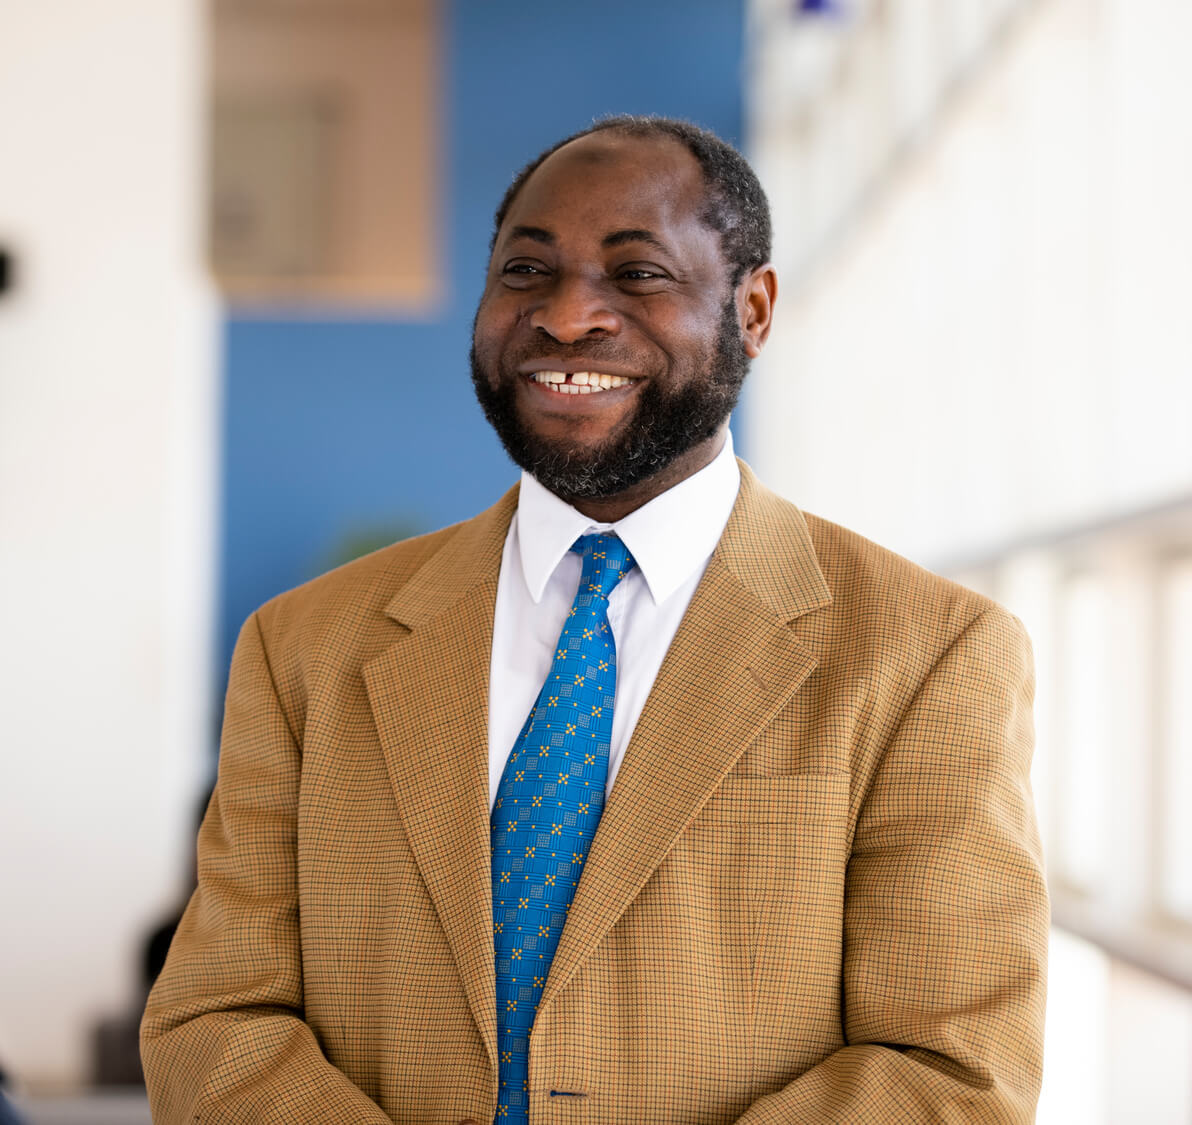 Professor Kamil Omoteso standing, smiling, dressed in a suit with blue tie